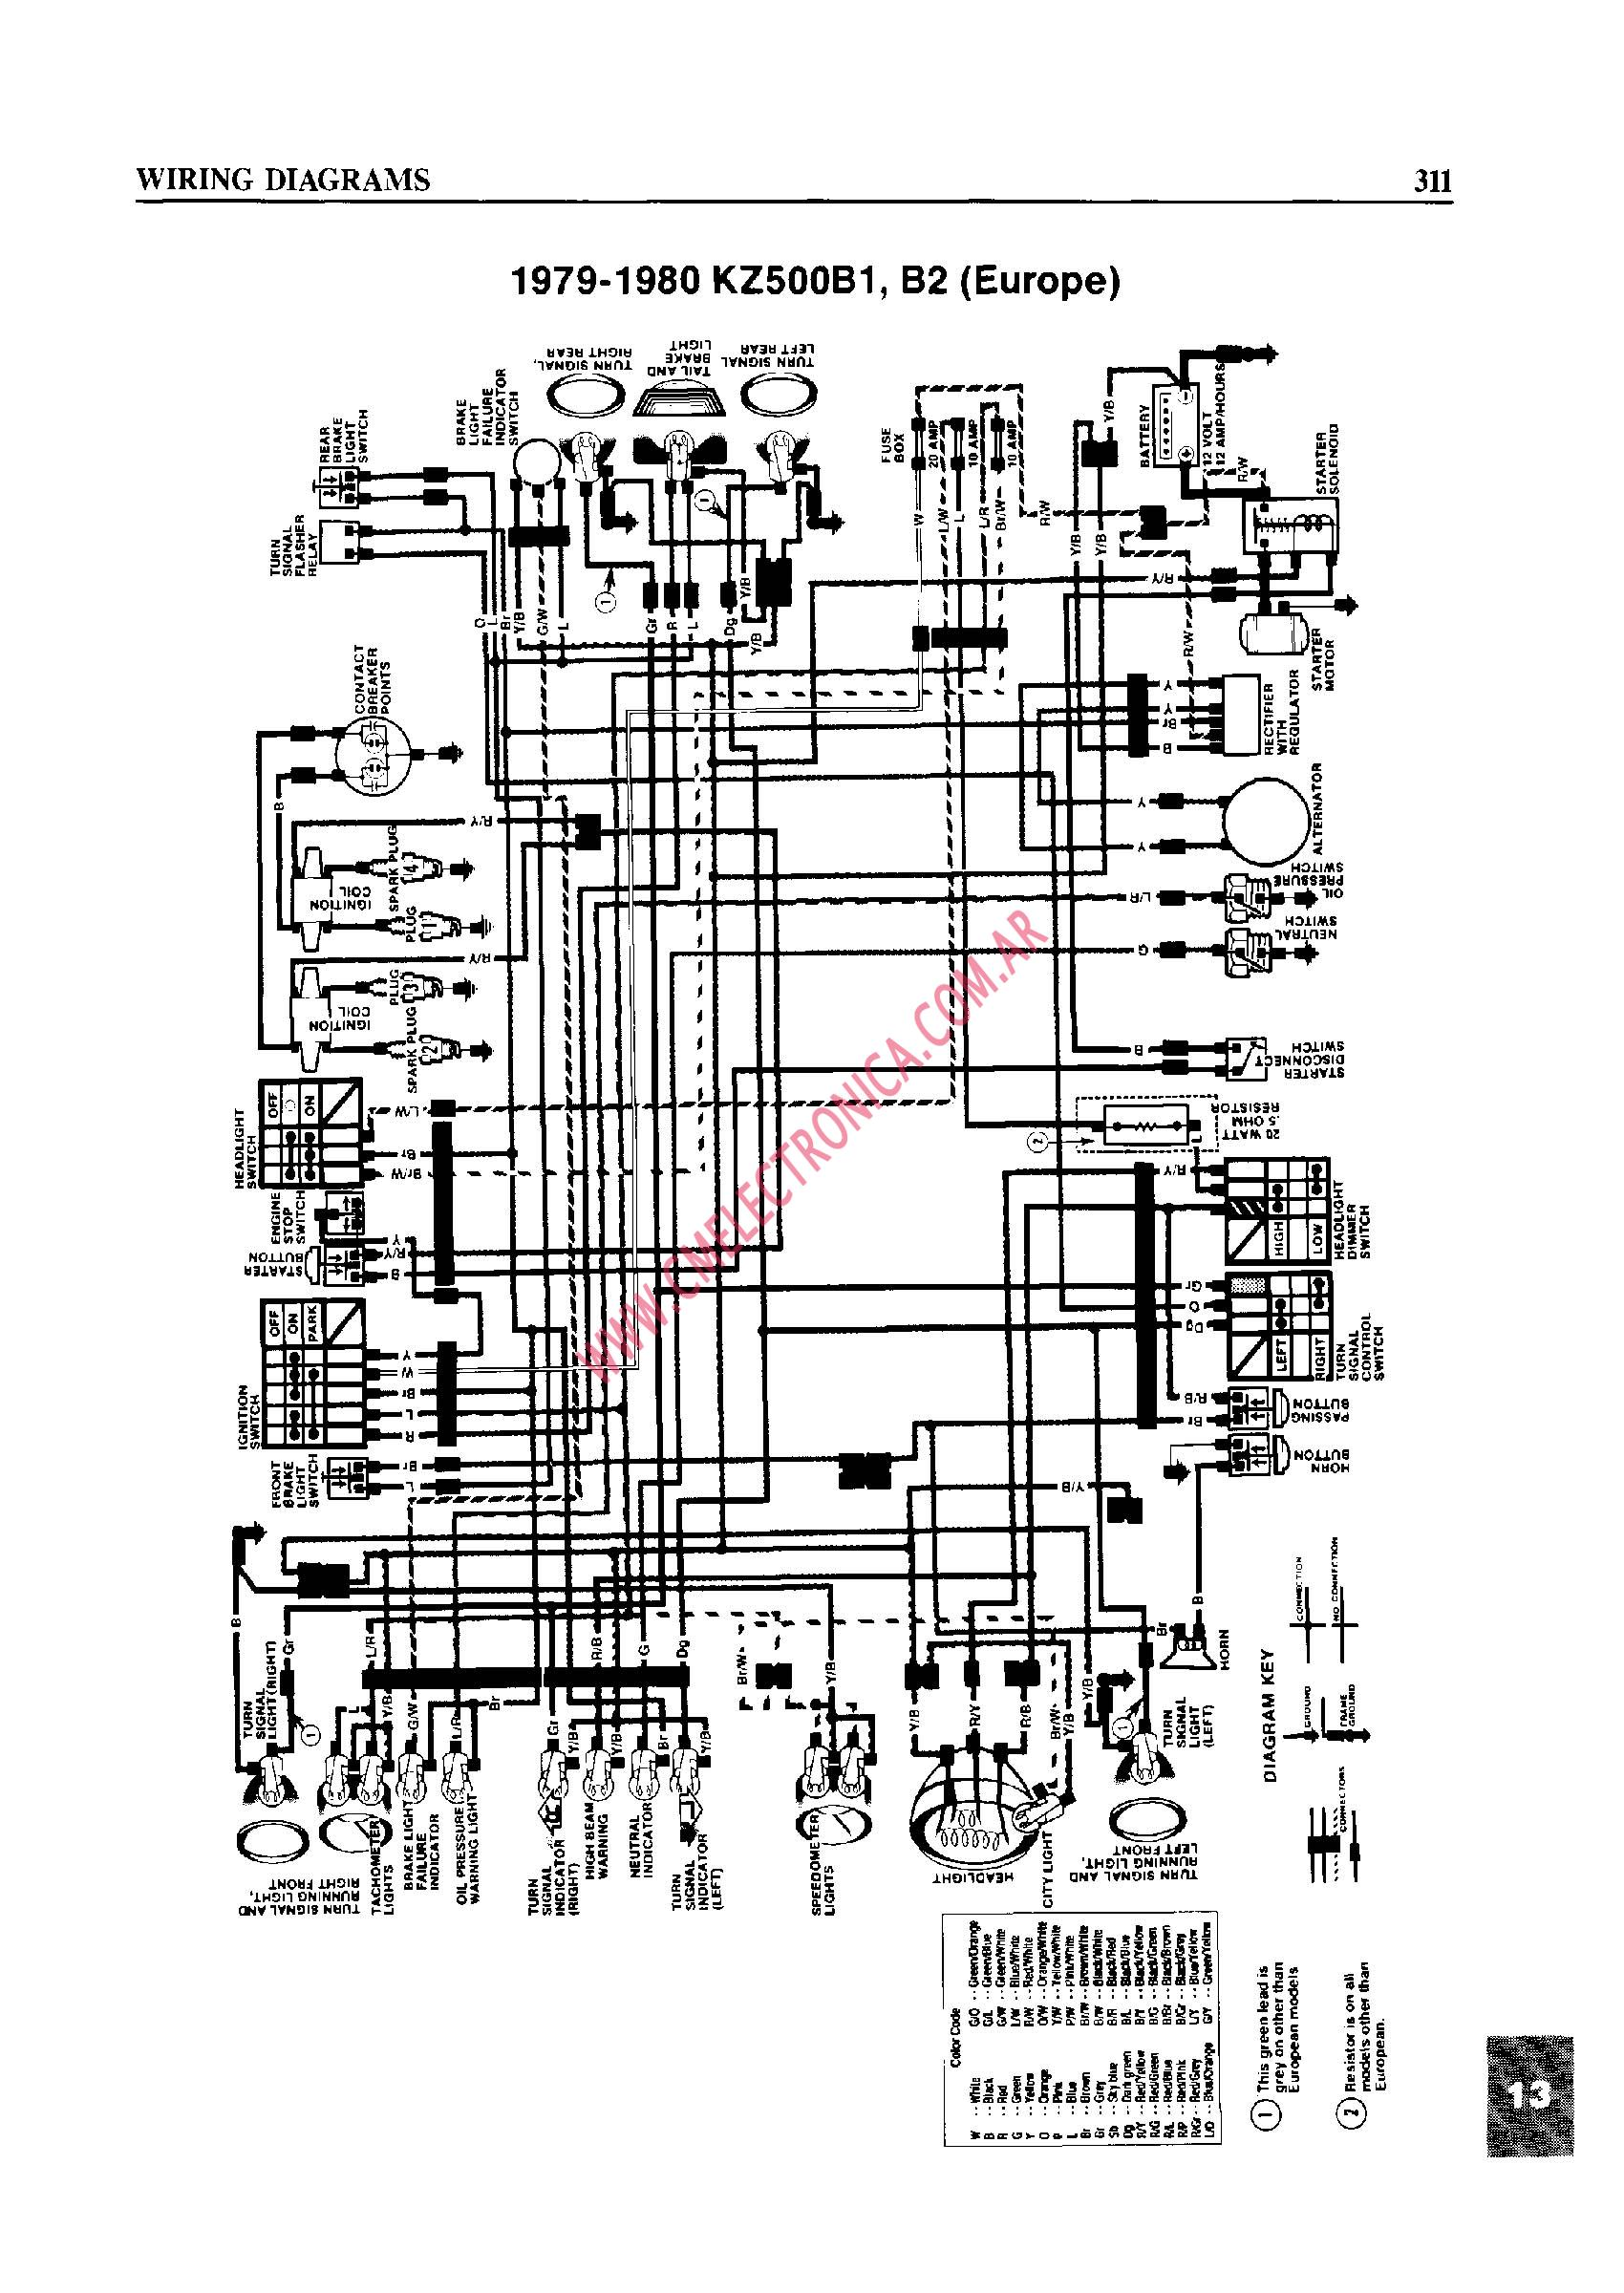 cbr 954rr wiring diagram r1 wiring diagram wiring diagram